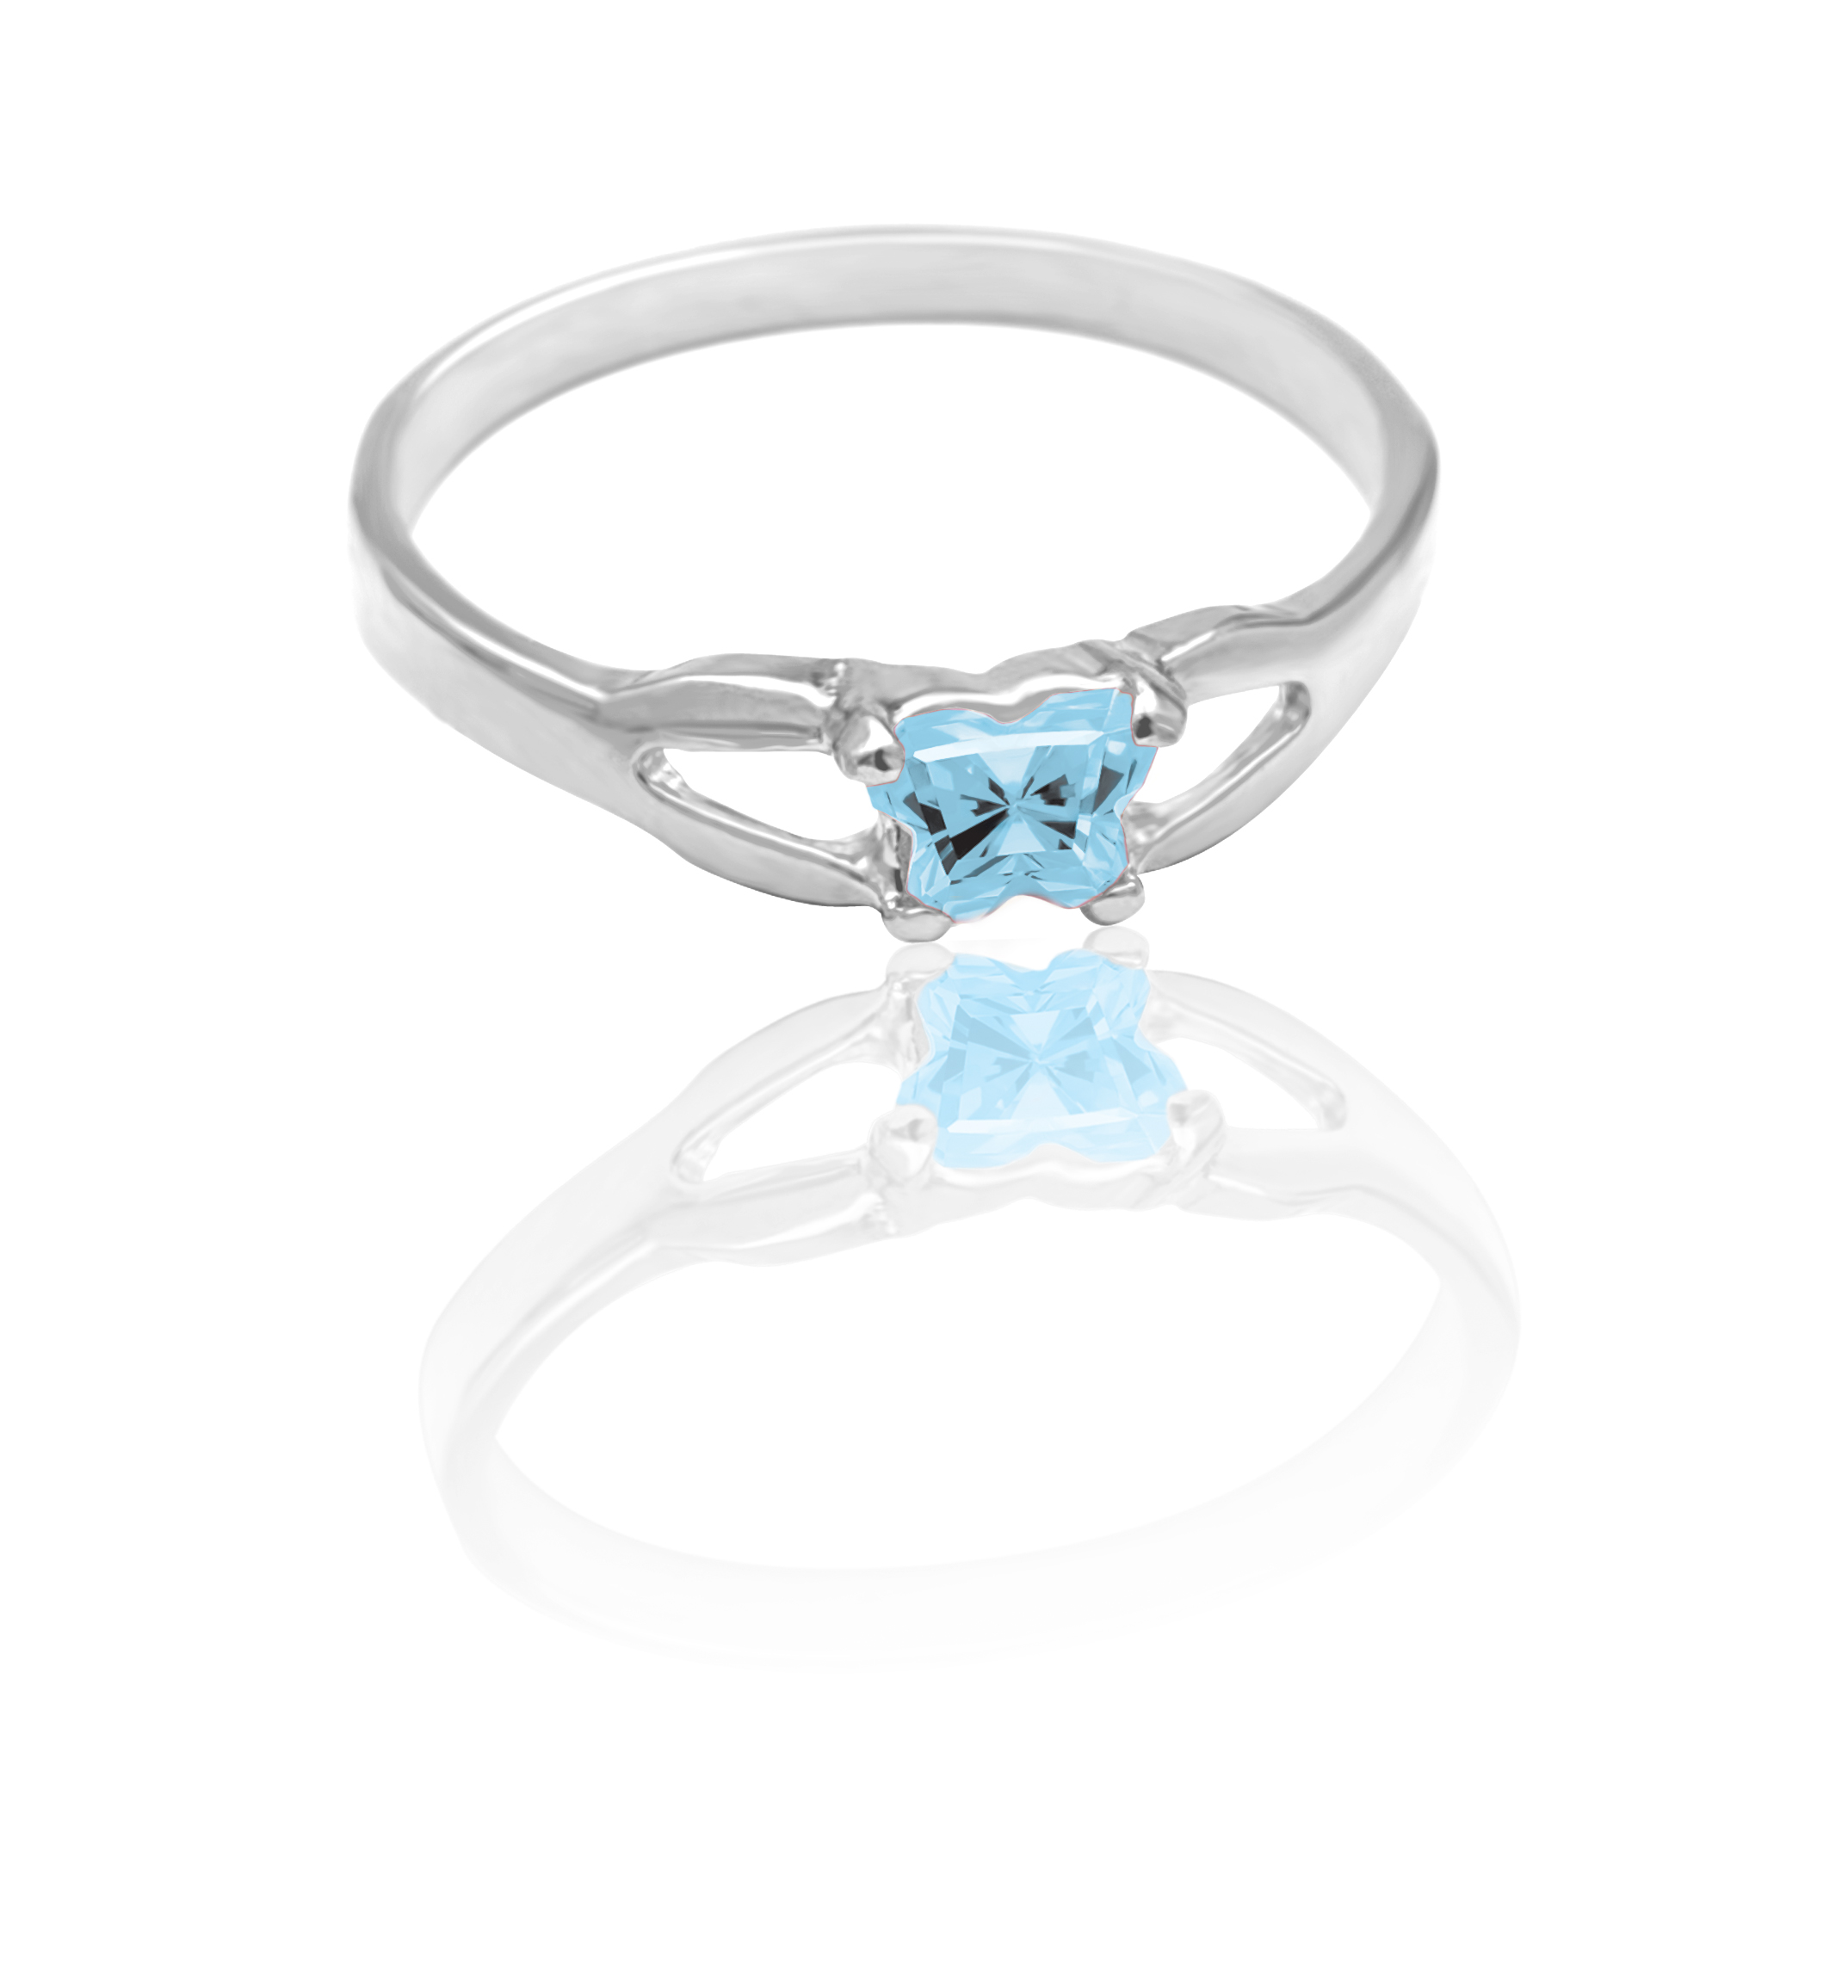 children ring in sterling silver with sky blue cubic zirconia (month of March)*